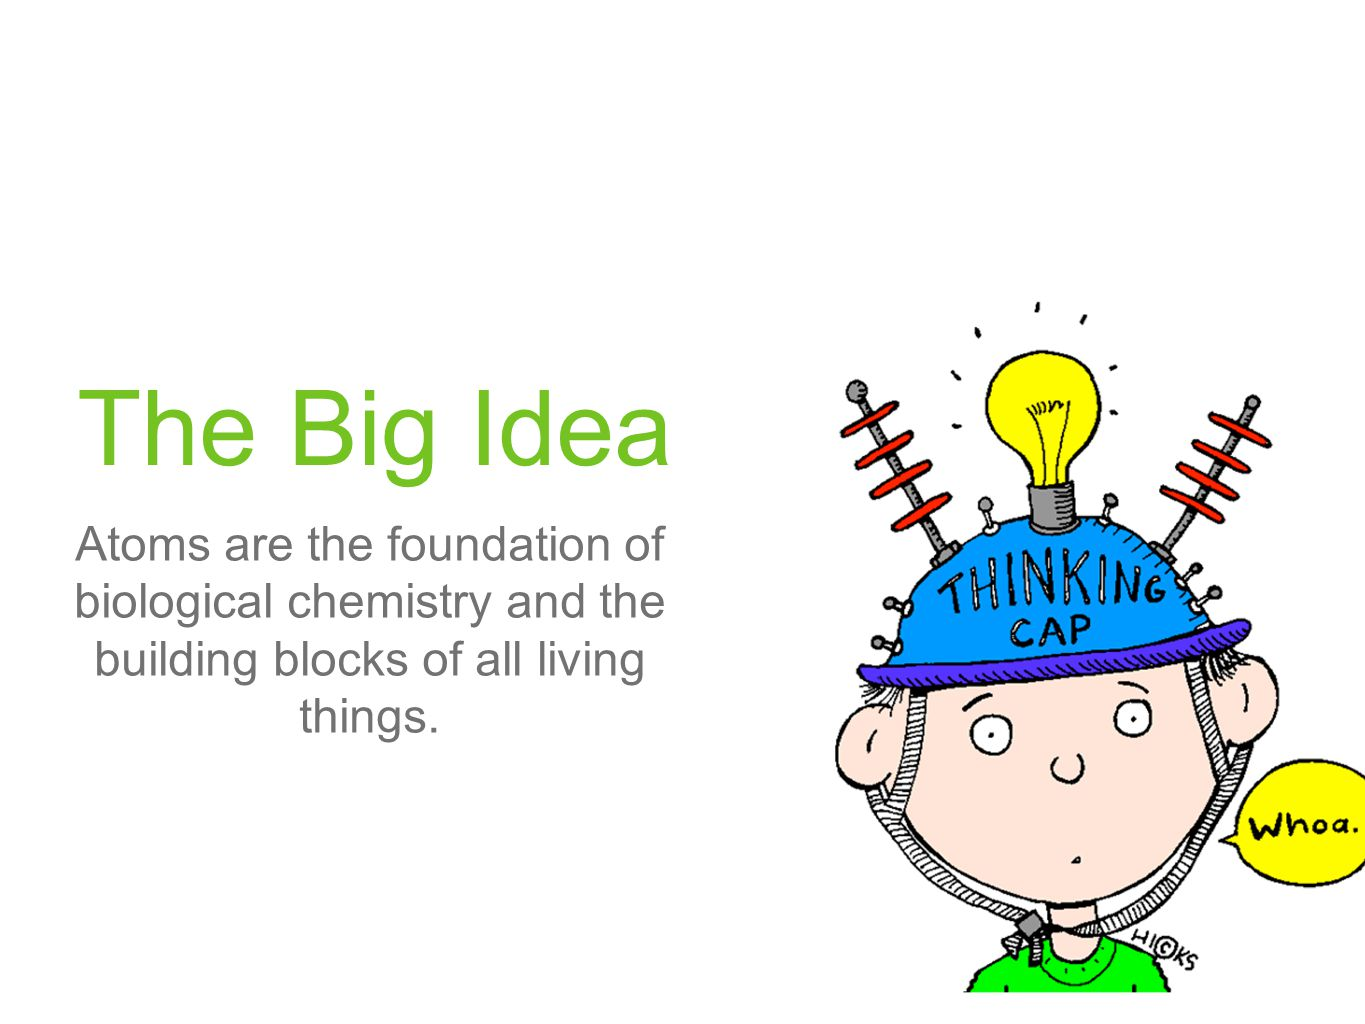 The Big Idea Atoms are the foundation of biological chemistry and the building blocks of all living things.